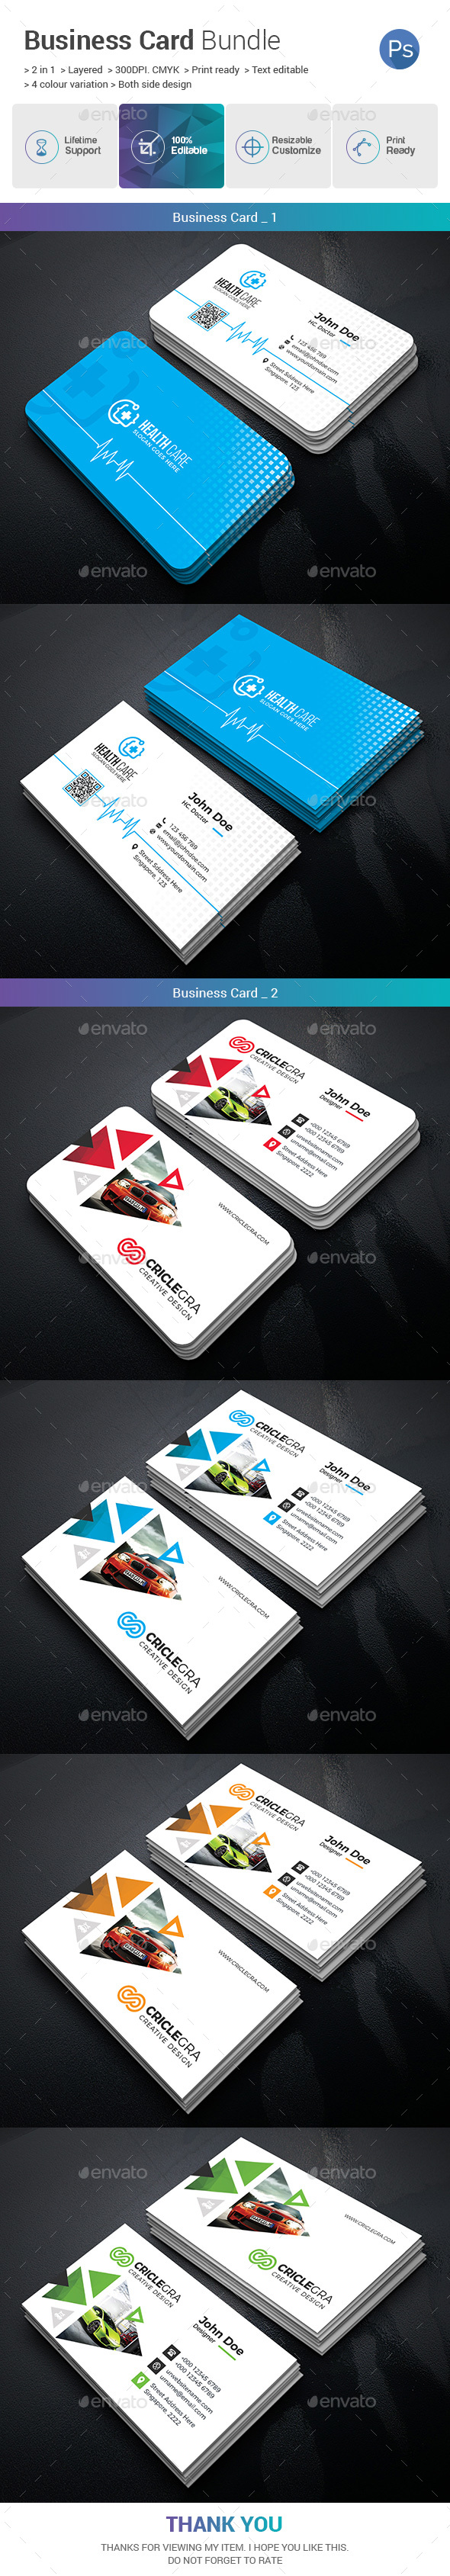 Business Card Bundle 2 in 1 - Business Cards Print Templates